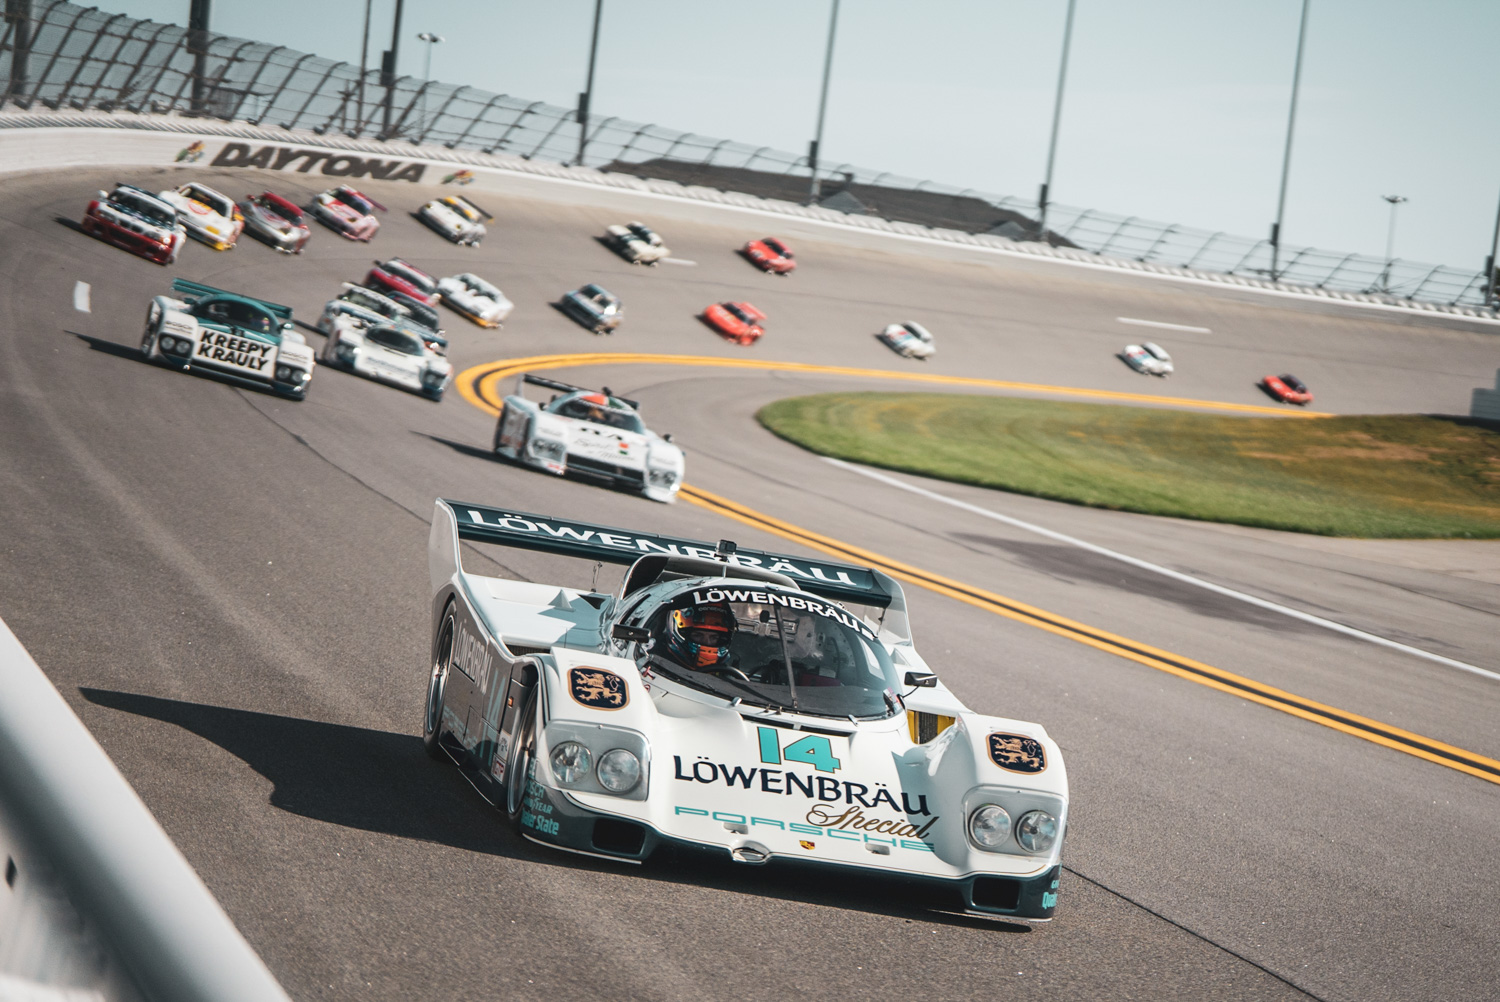 The morning before the big race, Daytona organized a vintage exhibition replete with multiple Porsche 962s.